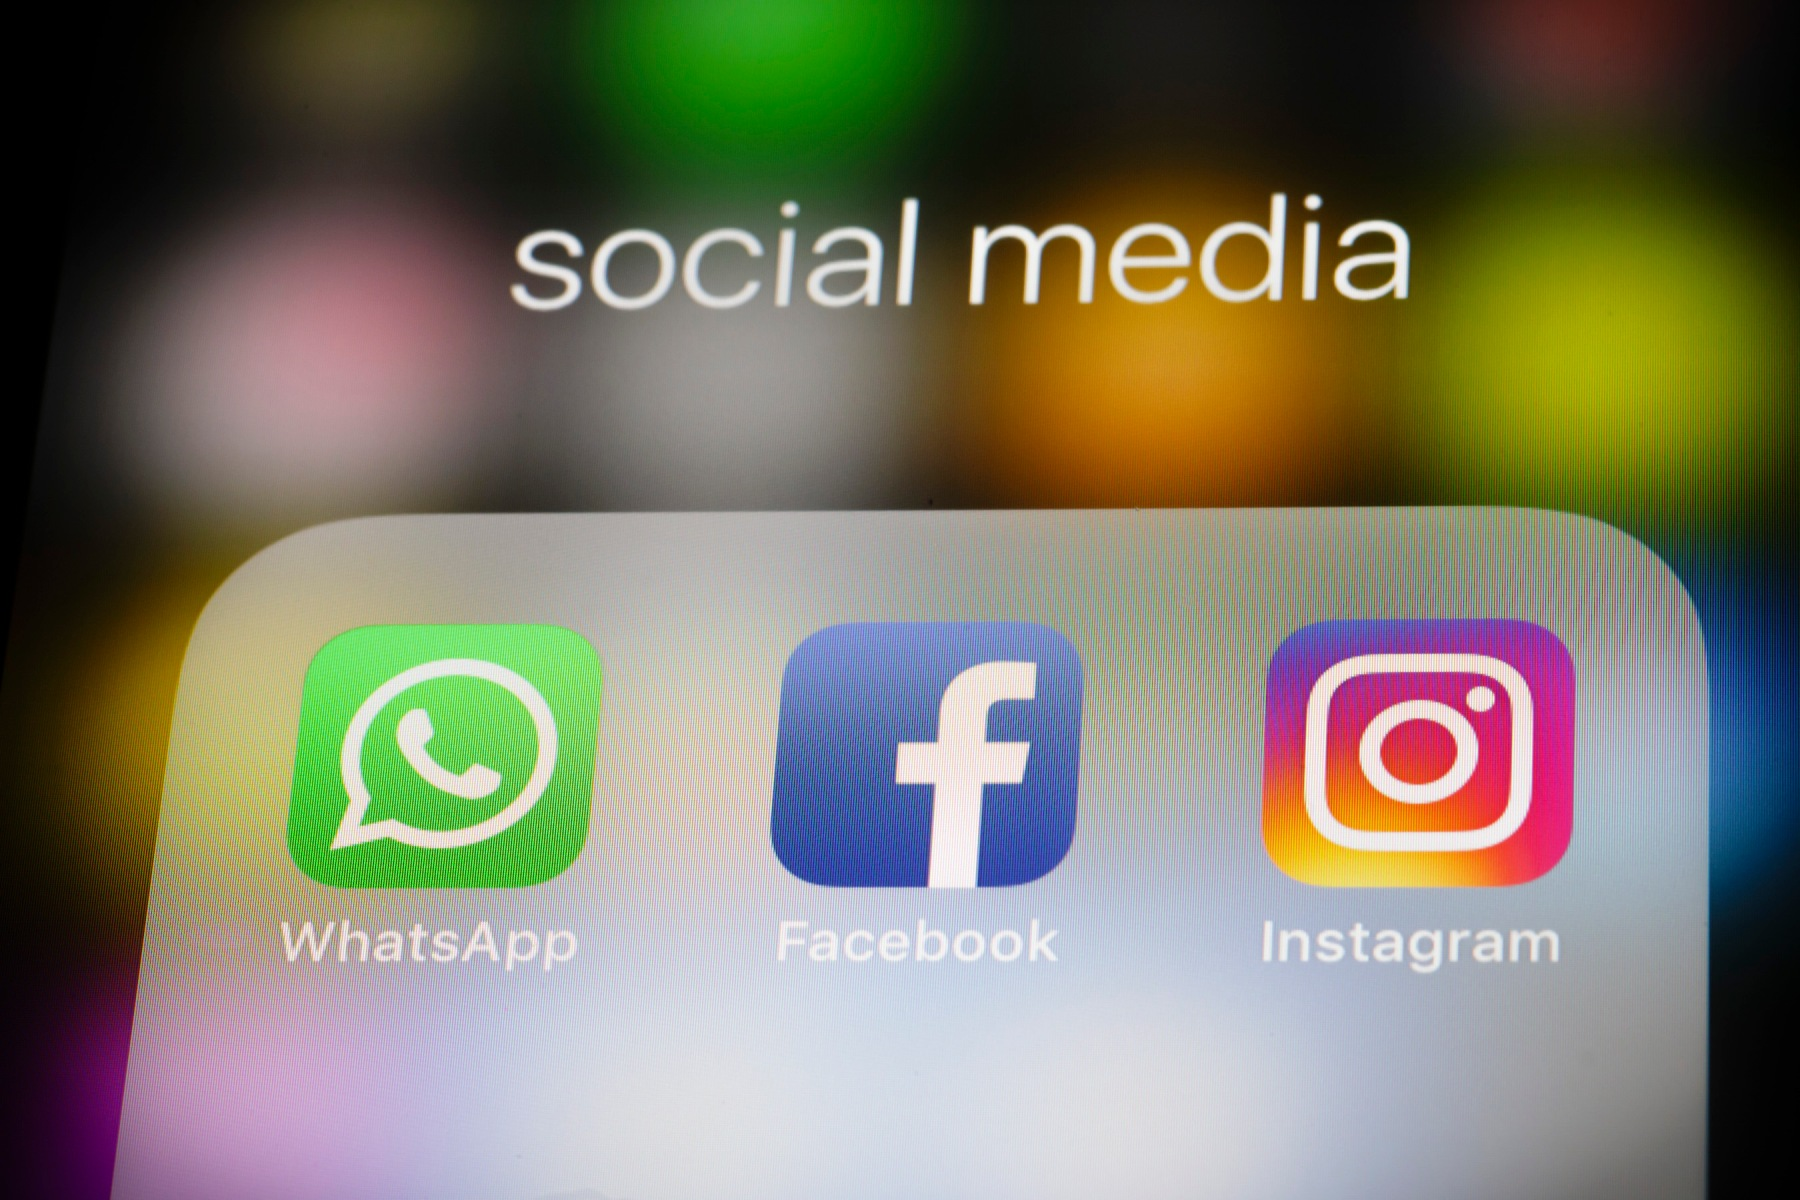 In this photo illustration the apps of social media networks WhatsApp, Facebook, and Instagram are displayed on a smartphone on February 12, 2018 in Berlin, Germany. (Photo Illustration by Thomas Trutschel/Photothek via Getty Images)